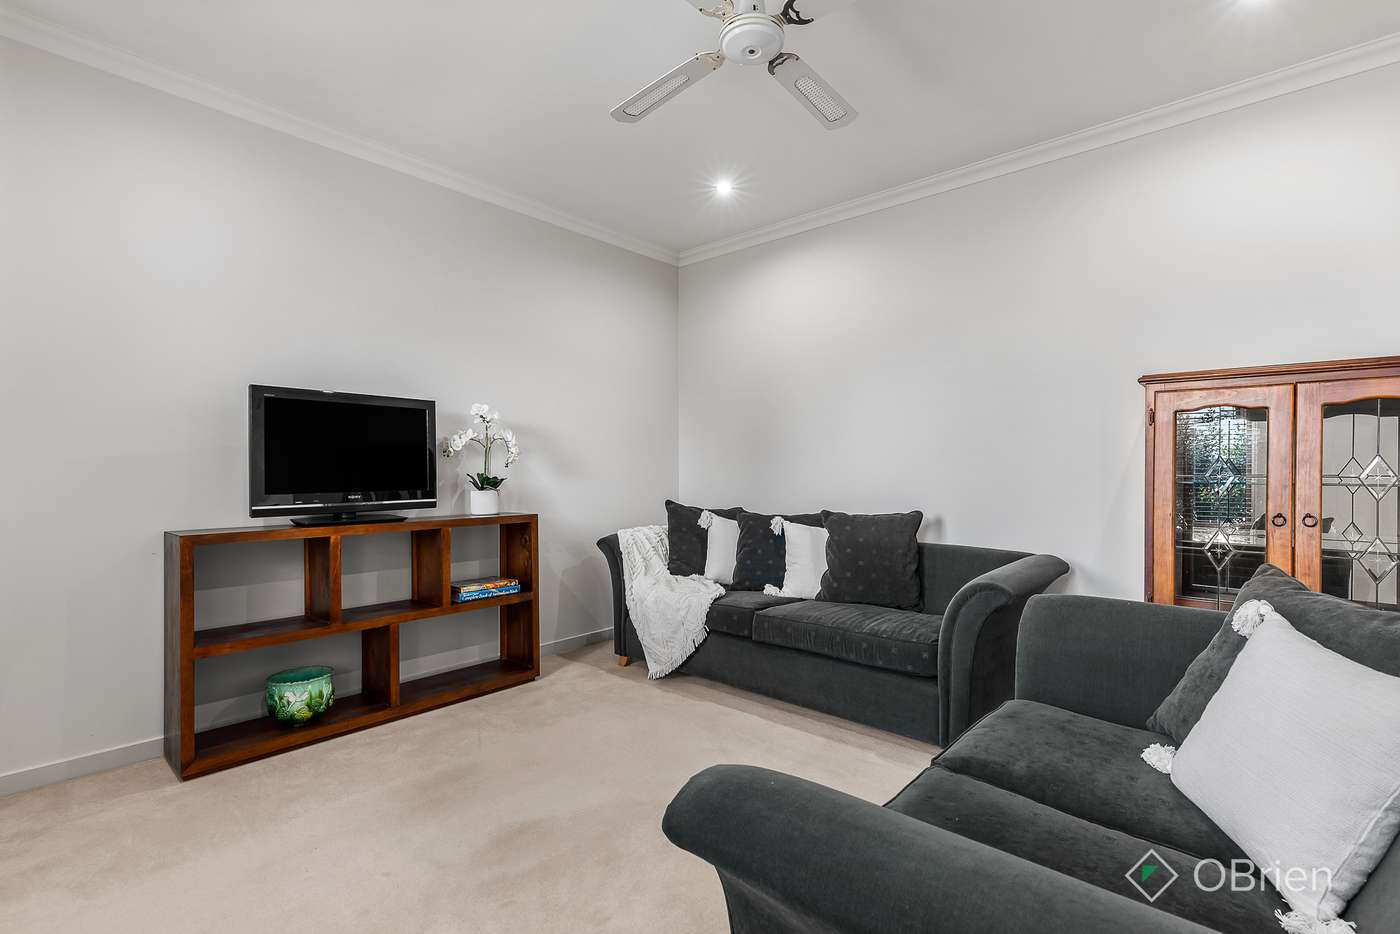 Fifth view of Homely house listing, 13 Oakland Street, Mornington VIC 3931